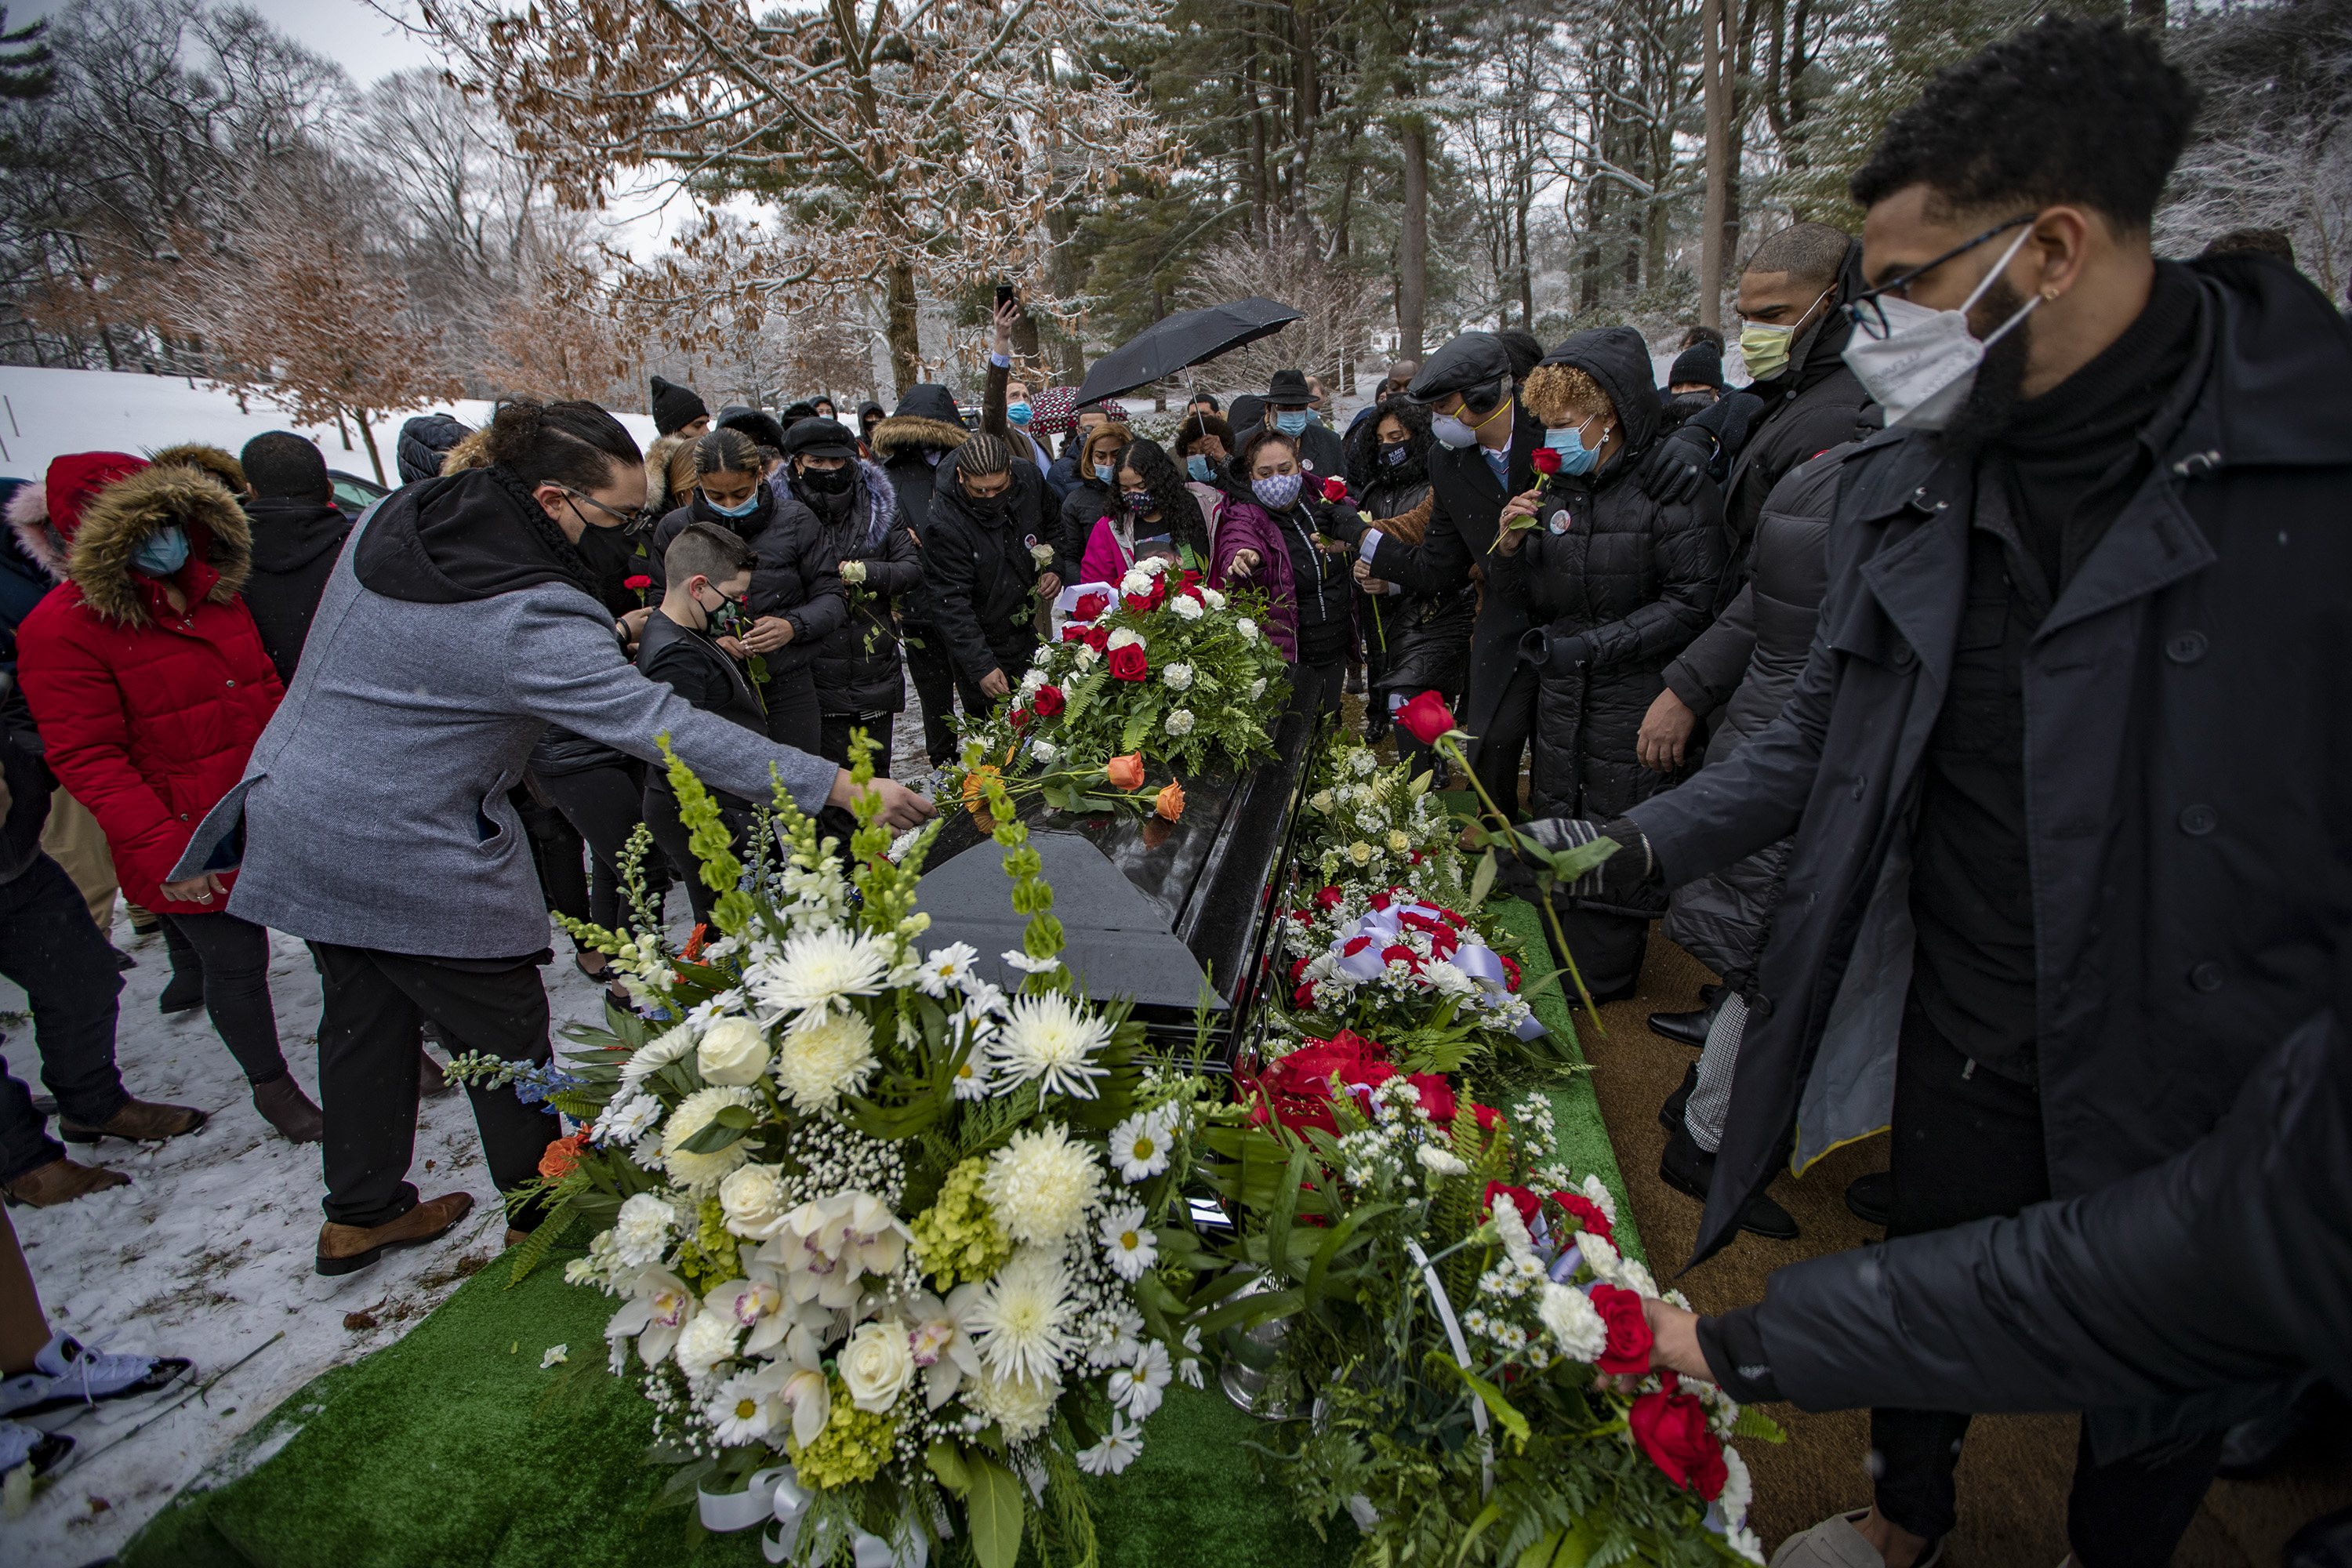 Friends and family place flowers on top of Henry Tapia's casket at Forest Hills Cemetery. (Jesse Costa/WBUR)